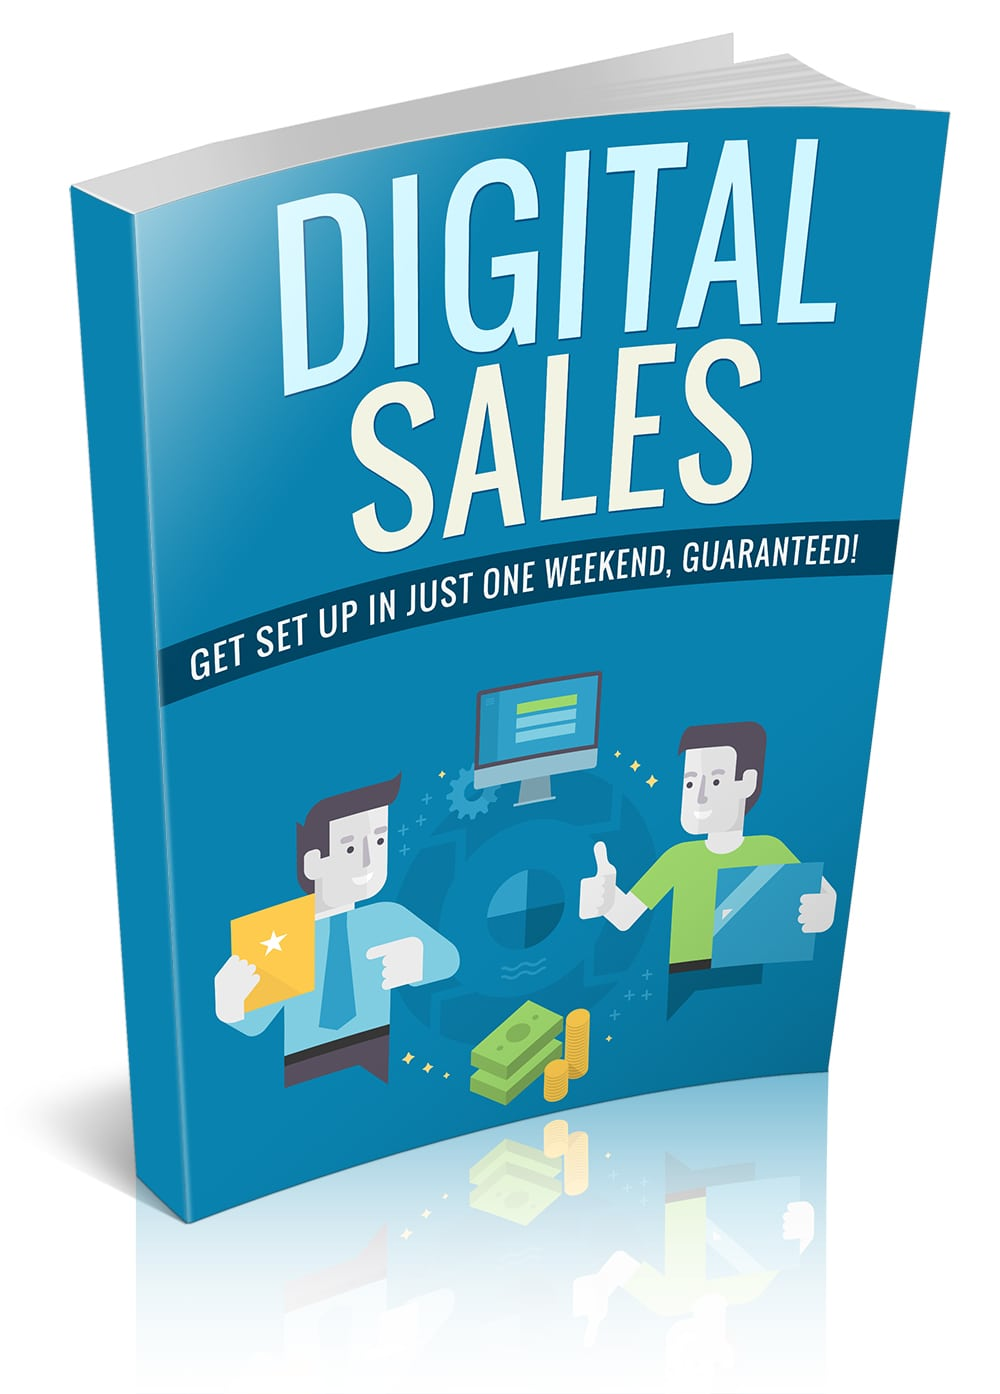 DigitalSales1 Digital Sales